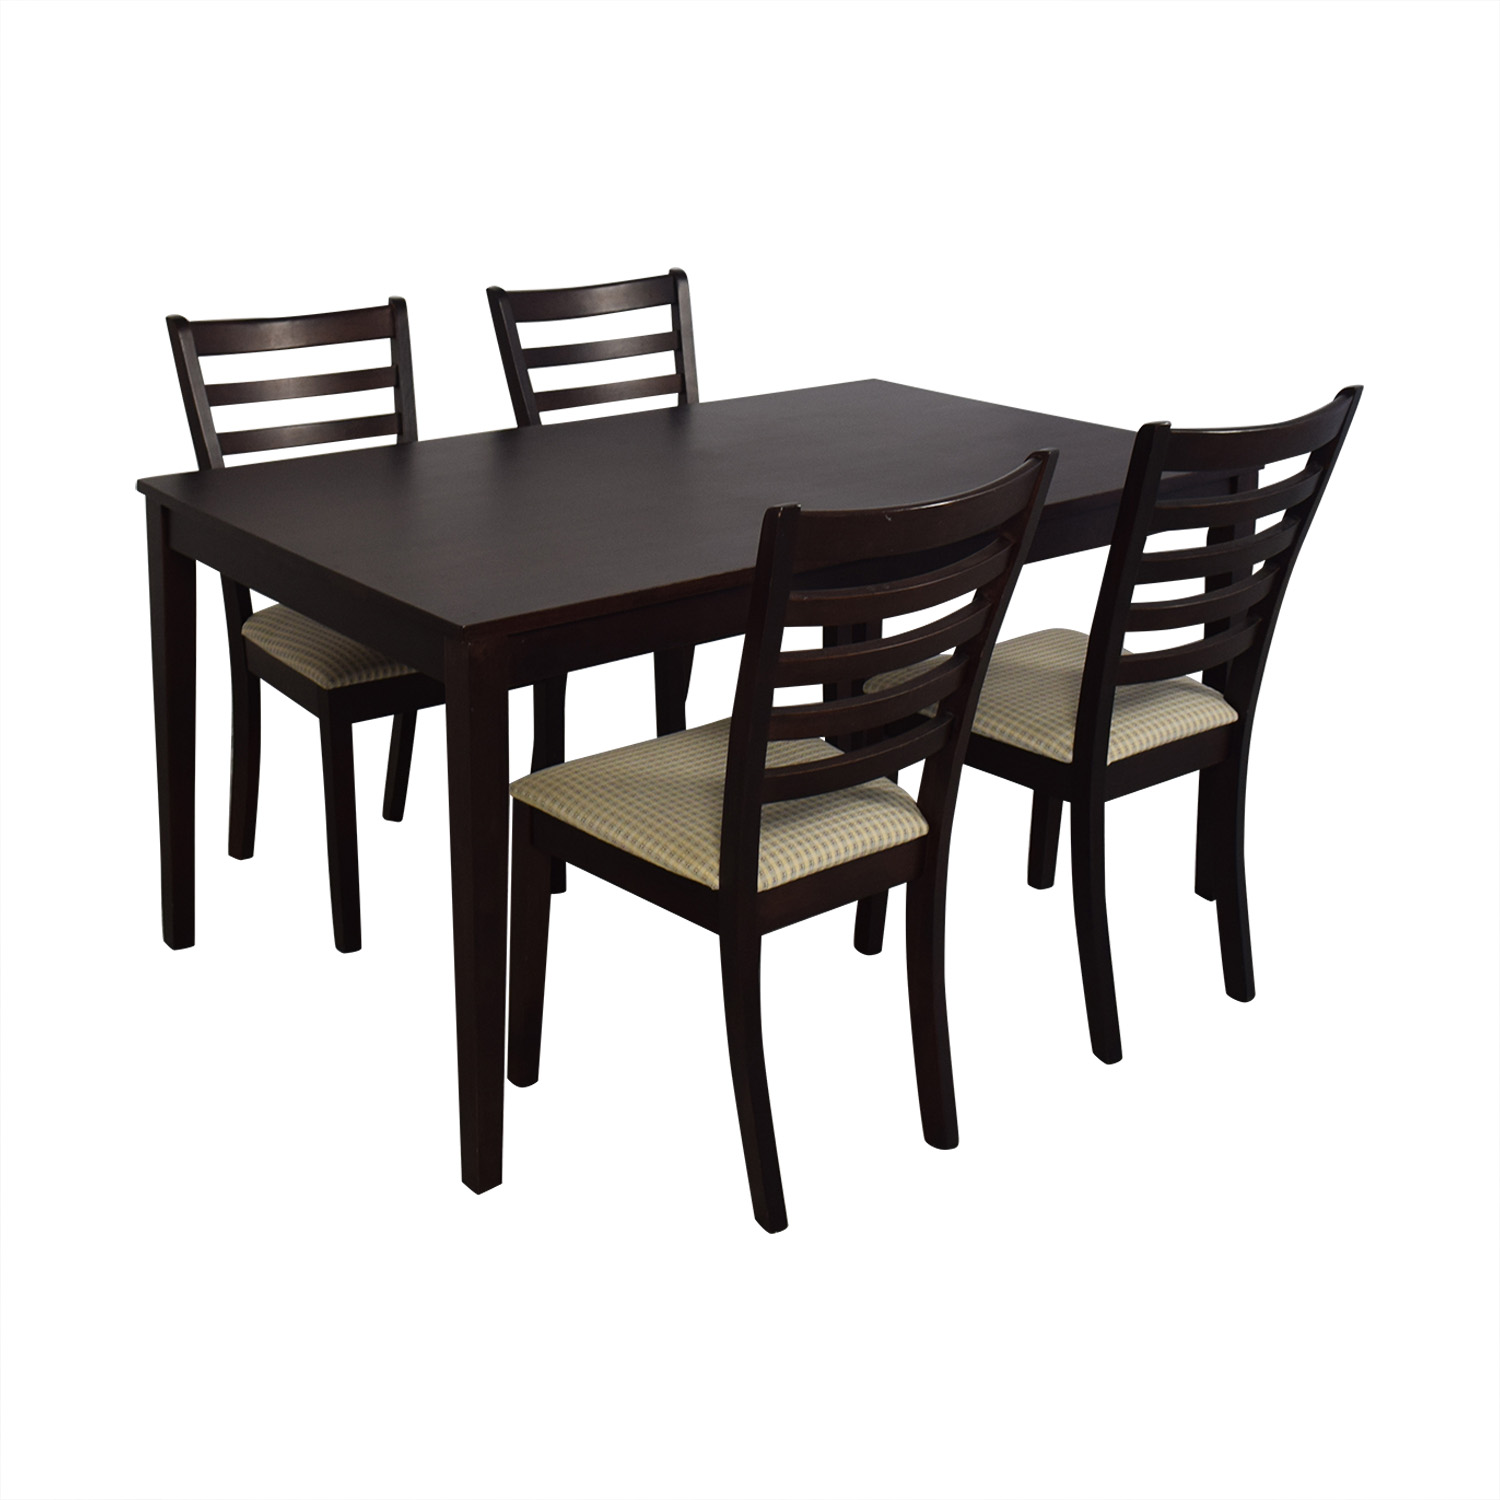 Dining Set with Beige Upholstered Chairs used